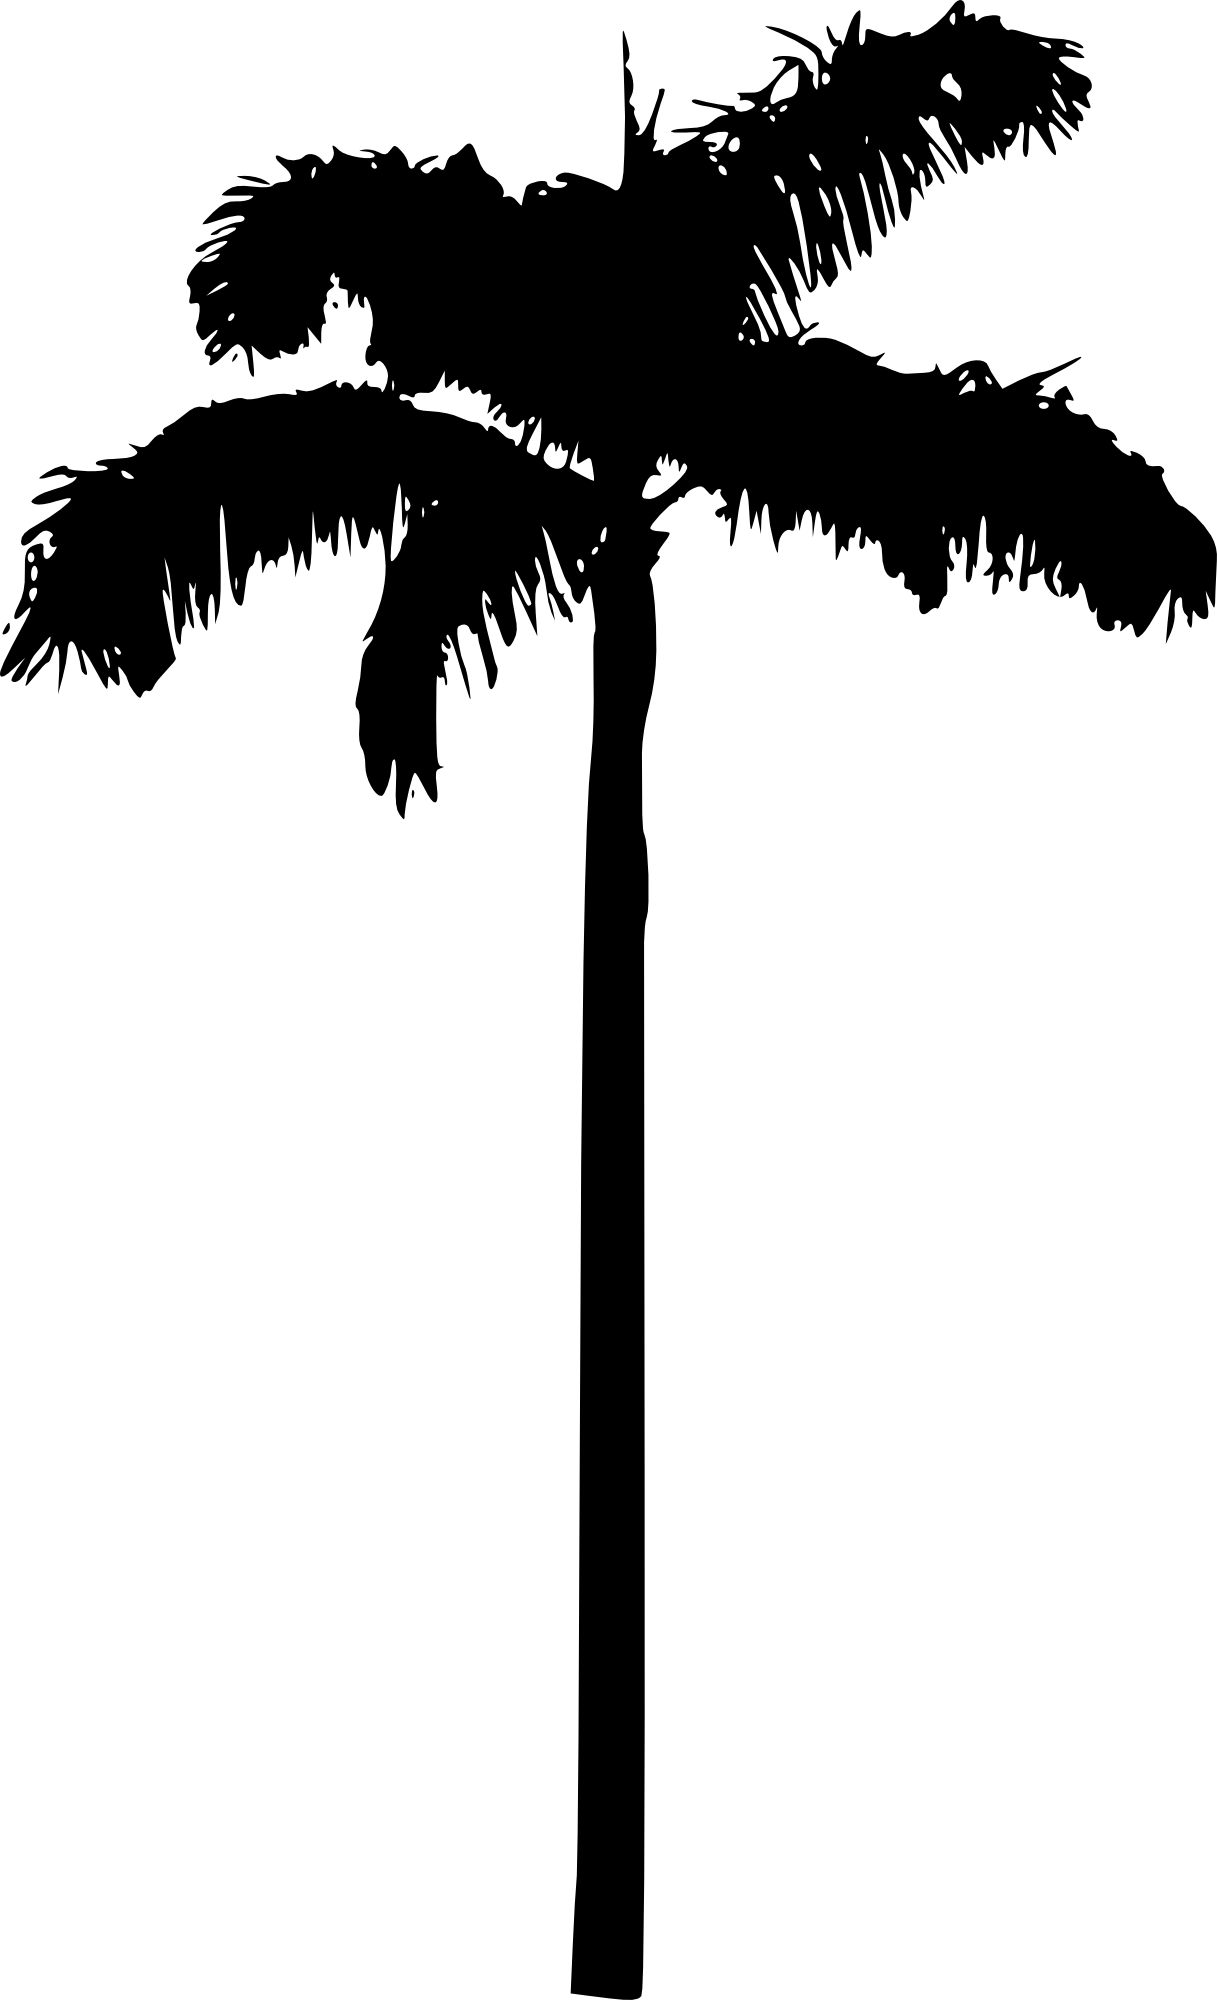 Palm tree clipart black and white no background image royalty free library 15 Palm Tree Silhouettes PNG Transparent Background | OnlyGFX.com image royalty free library